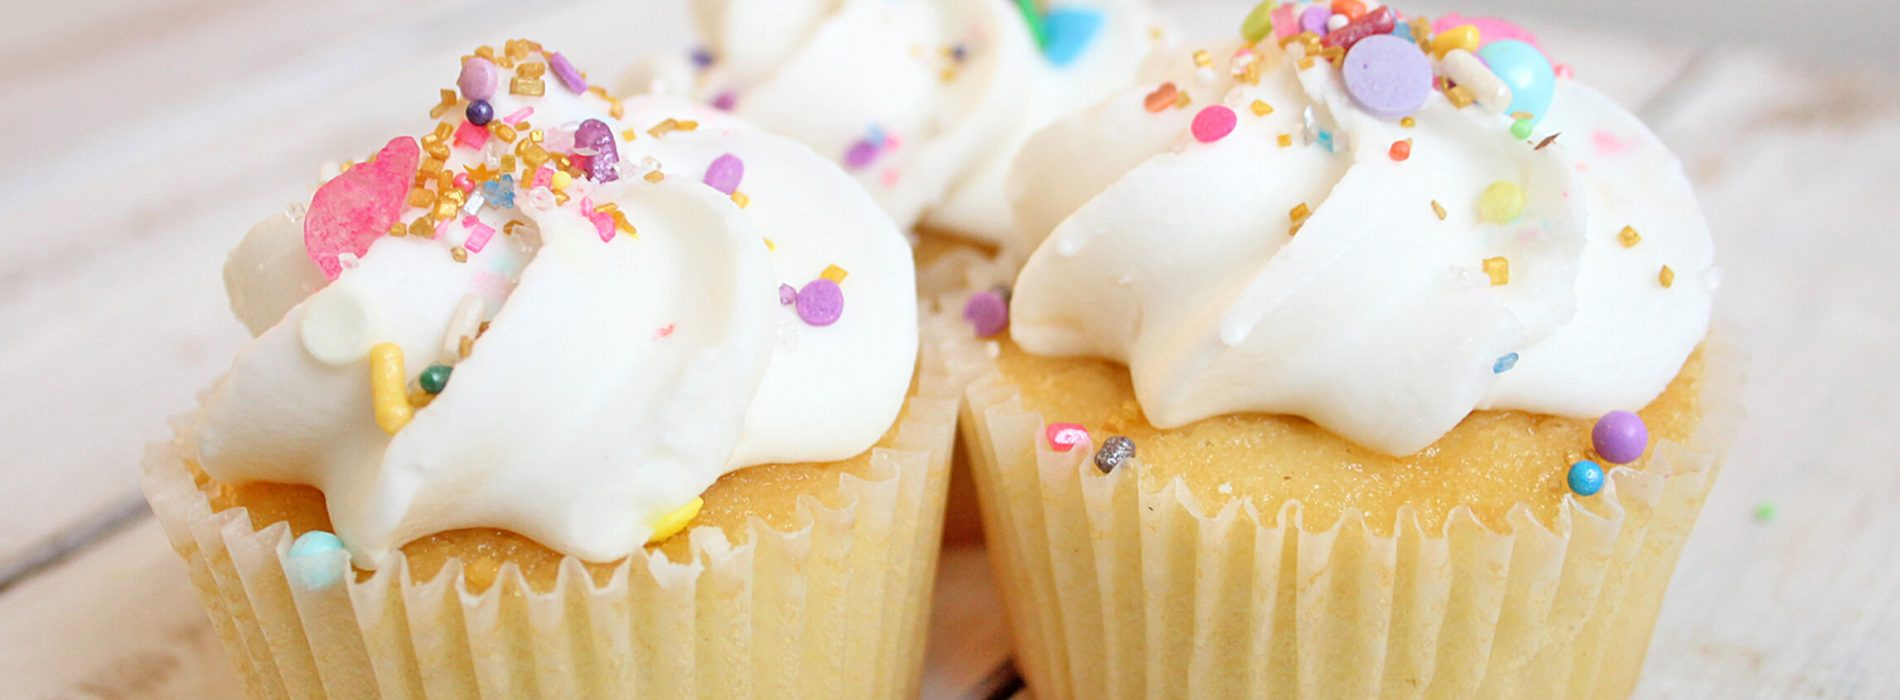 Tips for Making Cannabis Cupcakes